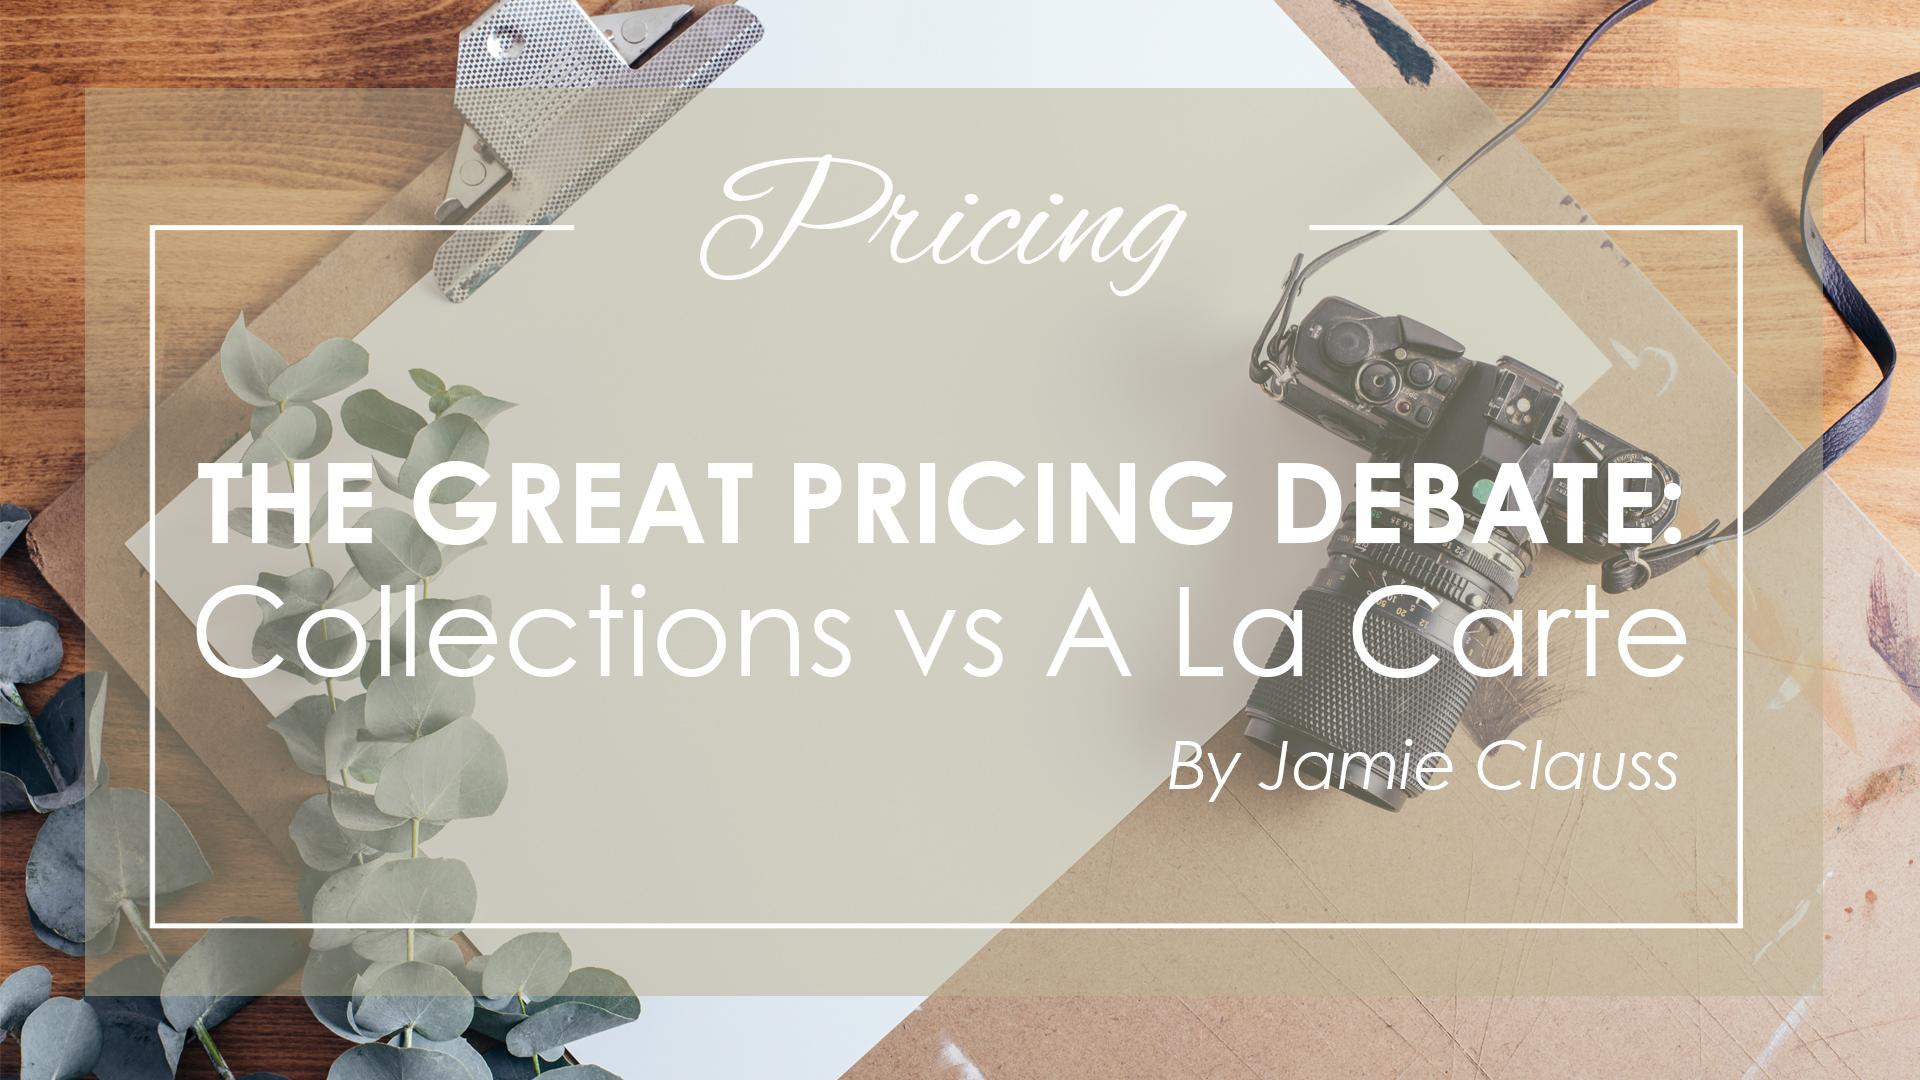 The Great Pricing Debate: Collections Vs Ala Carte